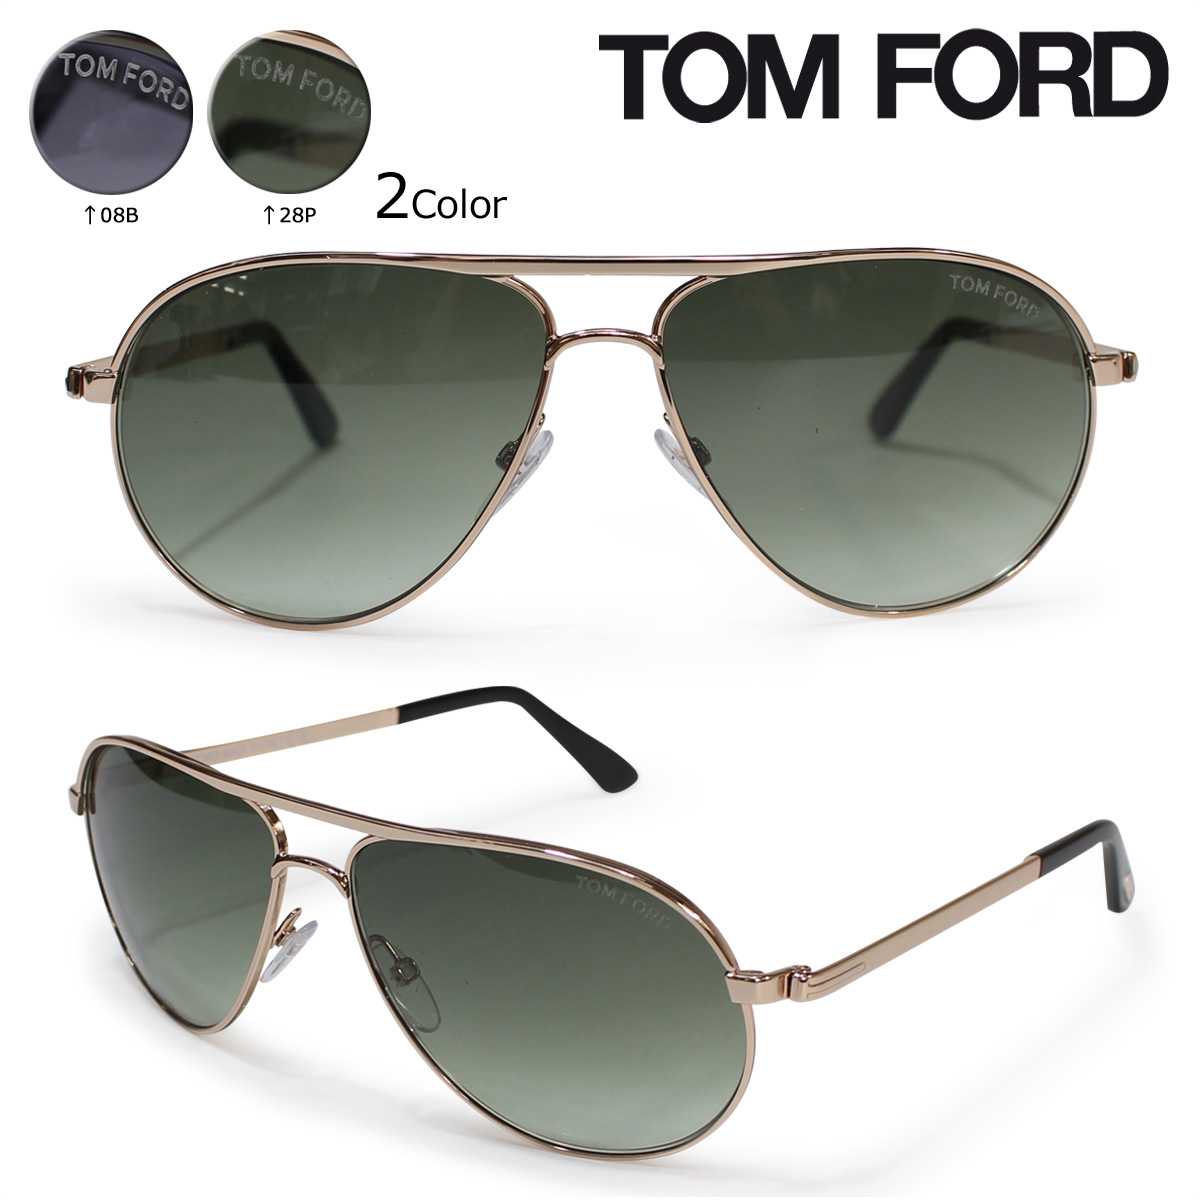 6f4815716980c ... on the lens from the temple is decorated in Tom Ford features.  Furnished with hand-made in Italy by Marcolin eyewear Center even as  popular as good.